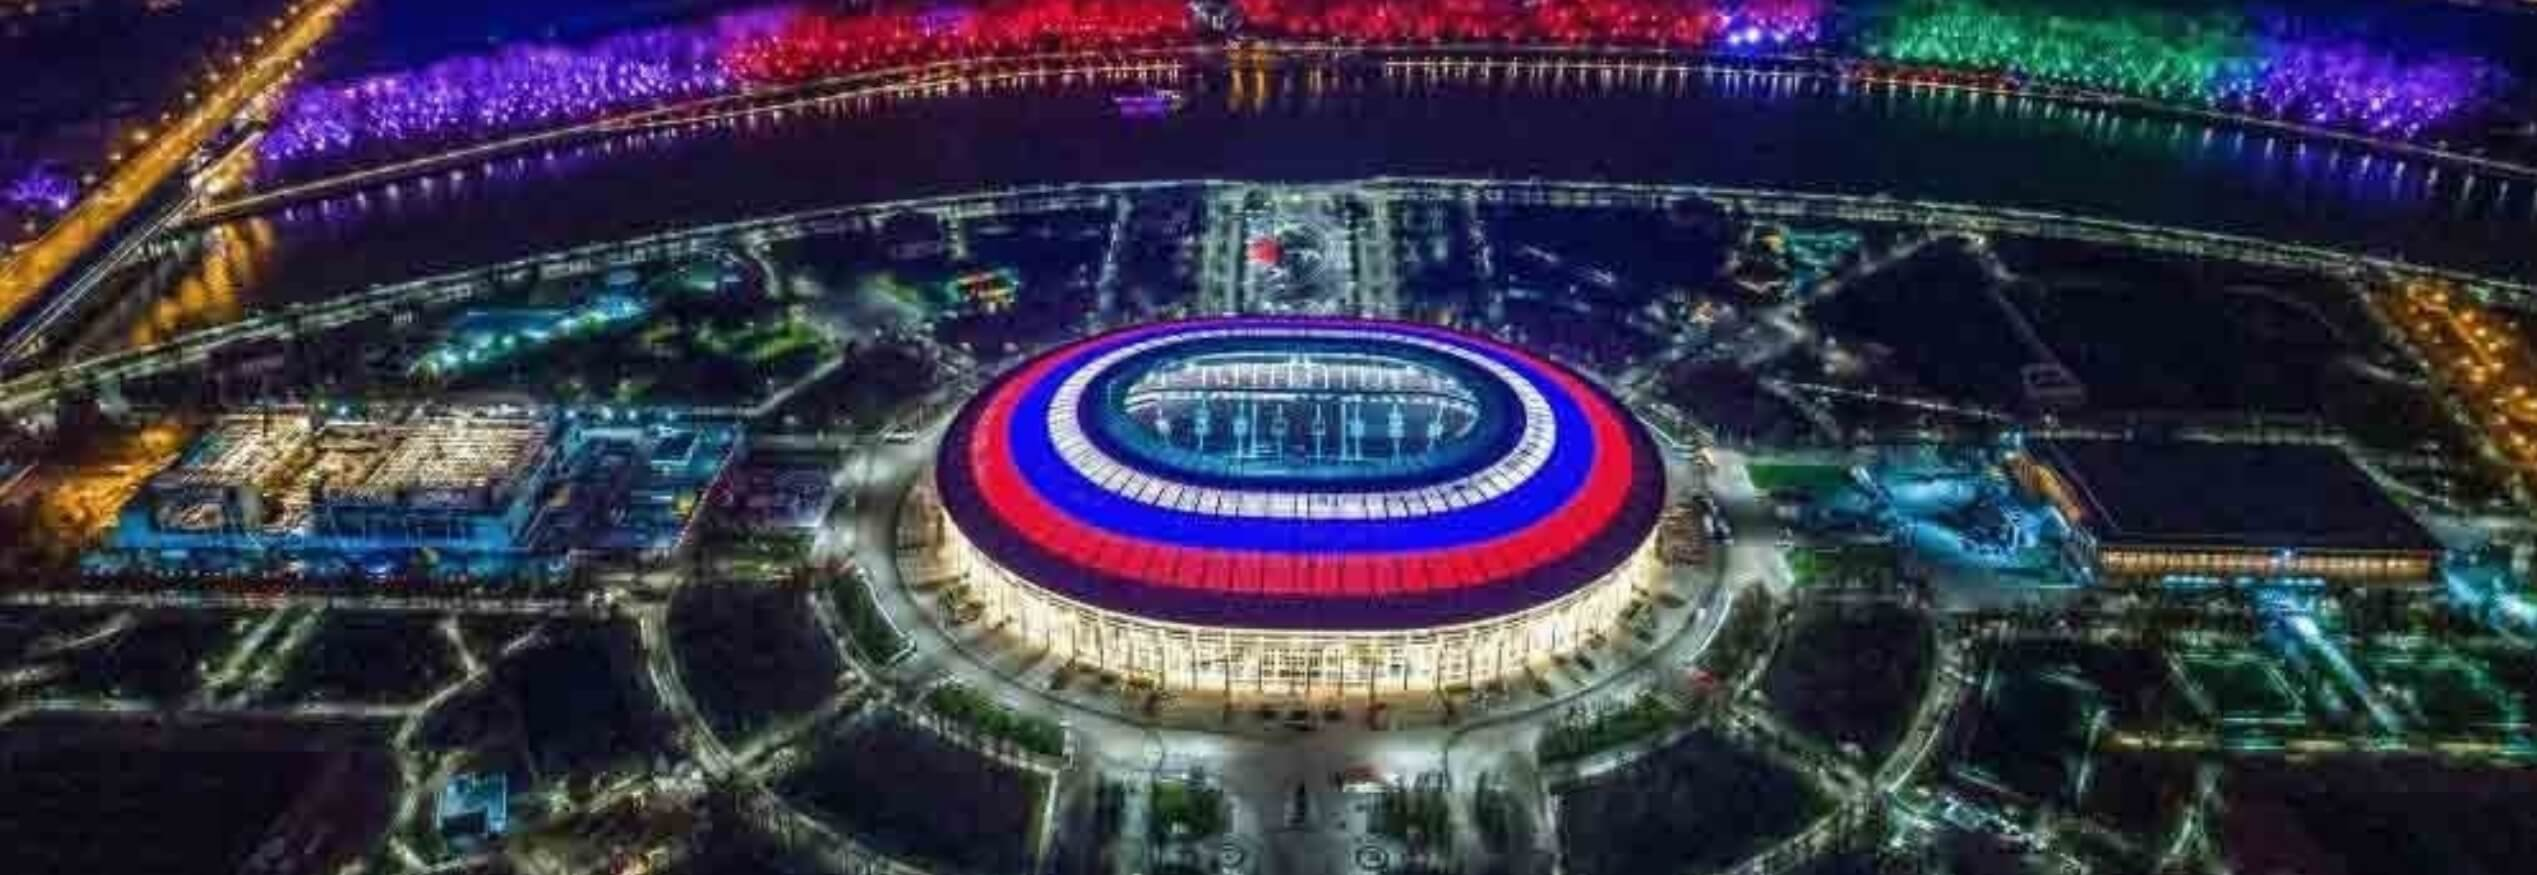 WC 2018 Opening Ceremony to begin from 6:30 pm (IST), Check out the itinerary